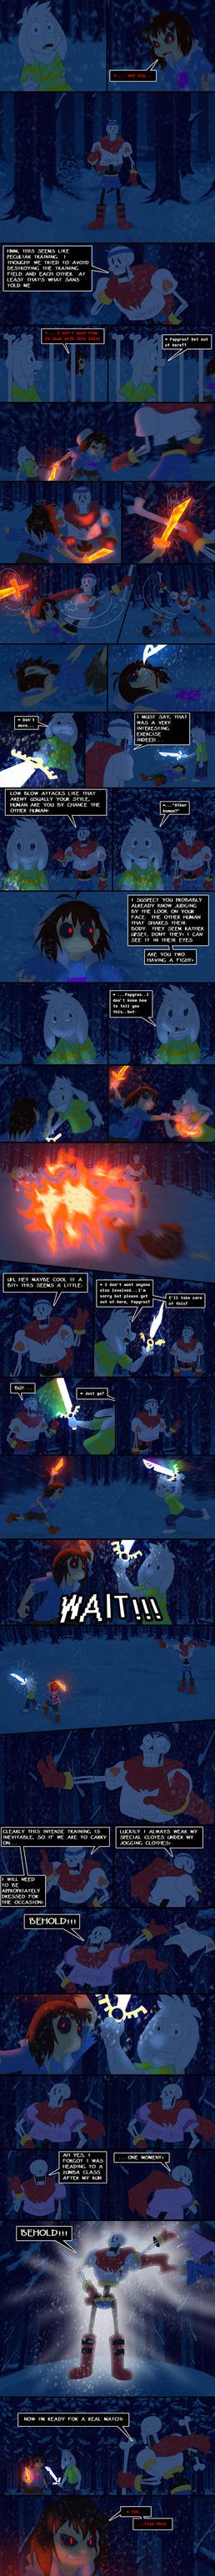 Endertale - Page 44